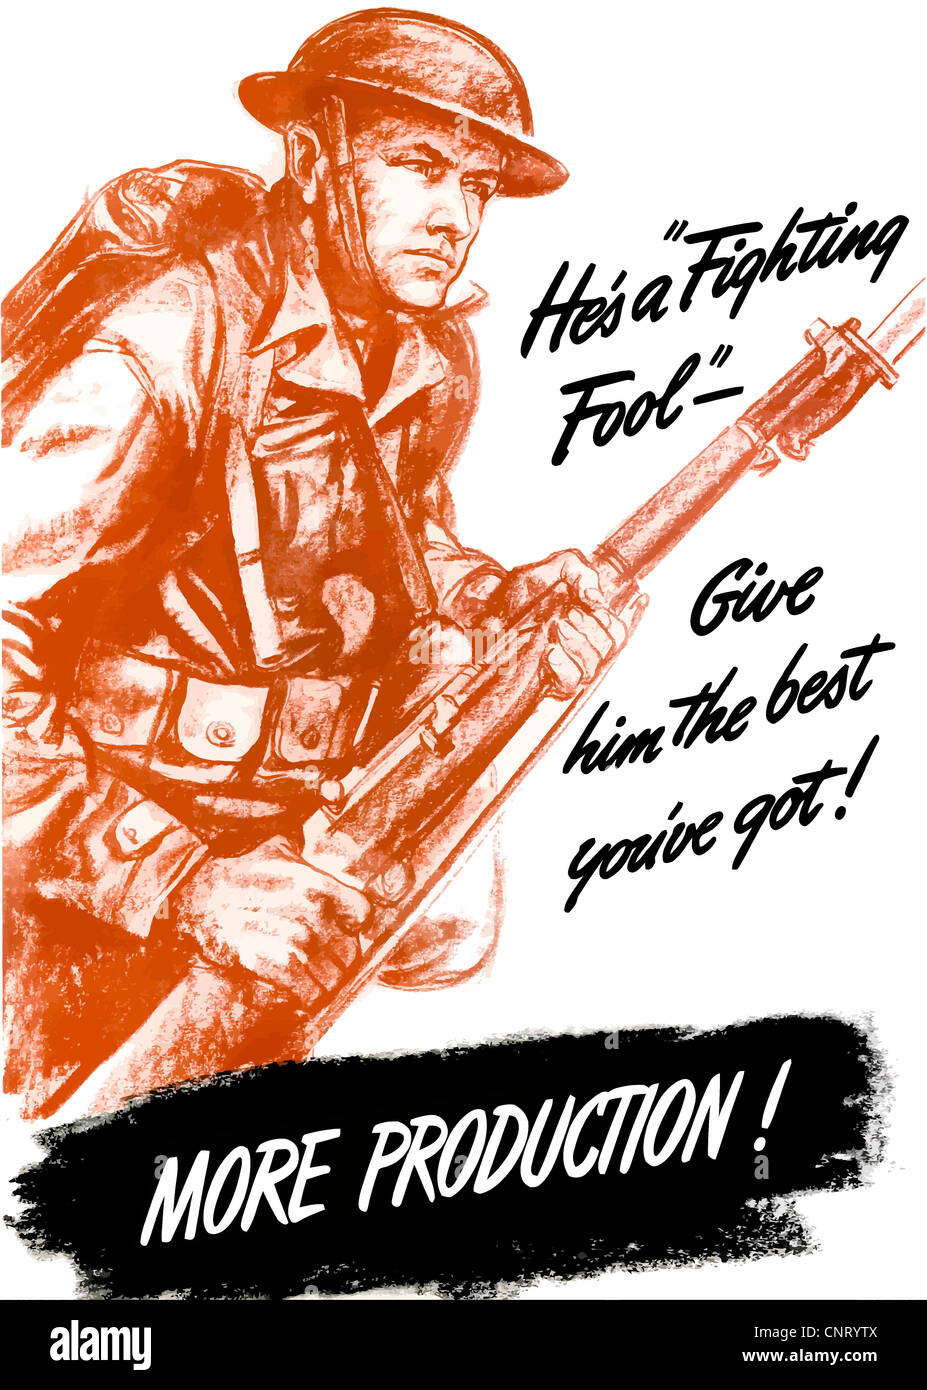 Digitally restored propaganda war poster. - Stock Image